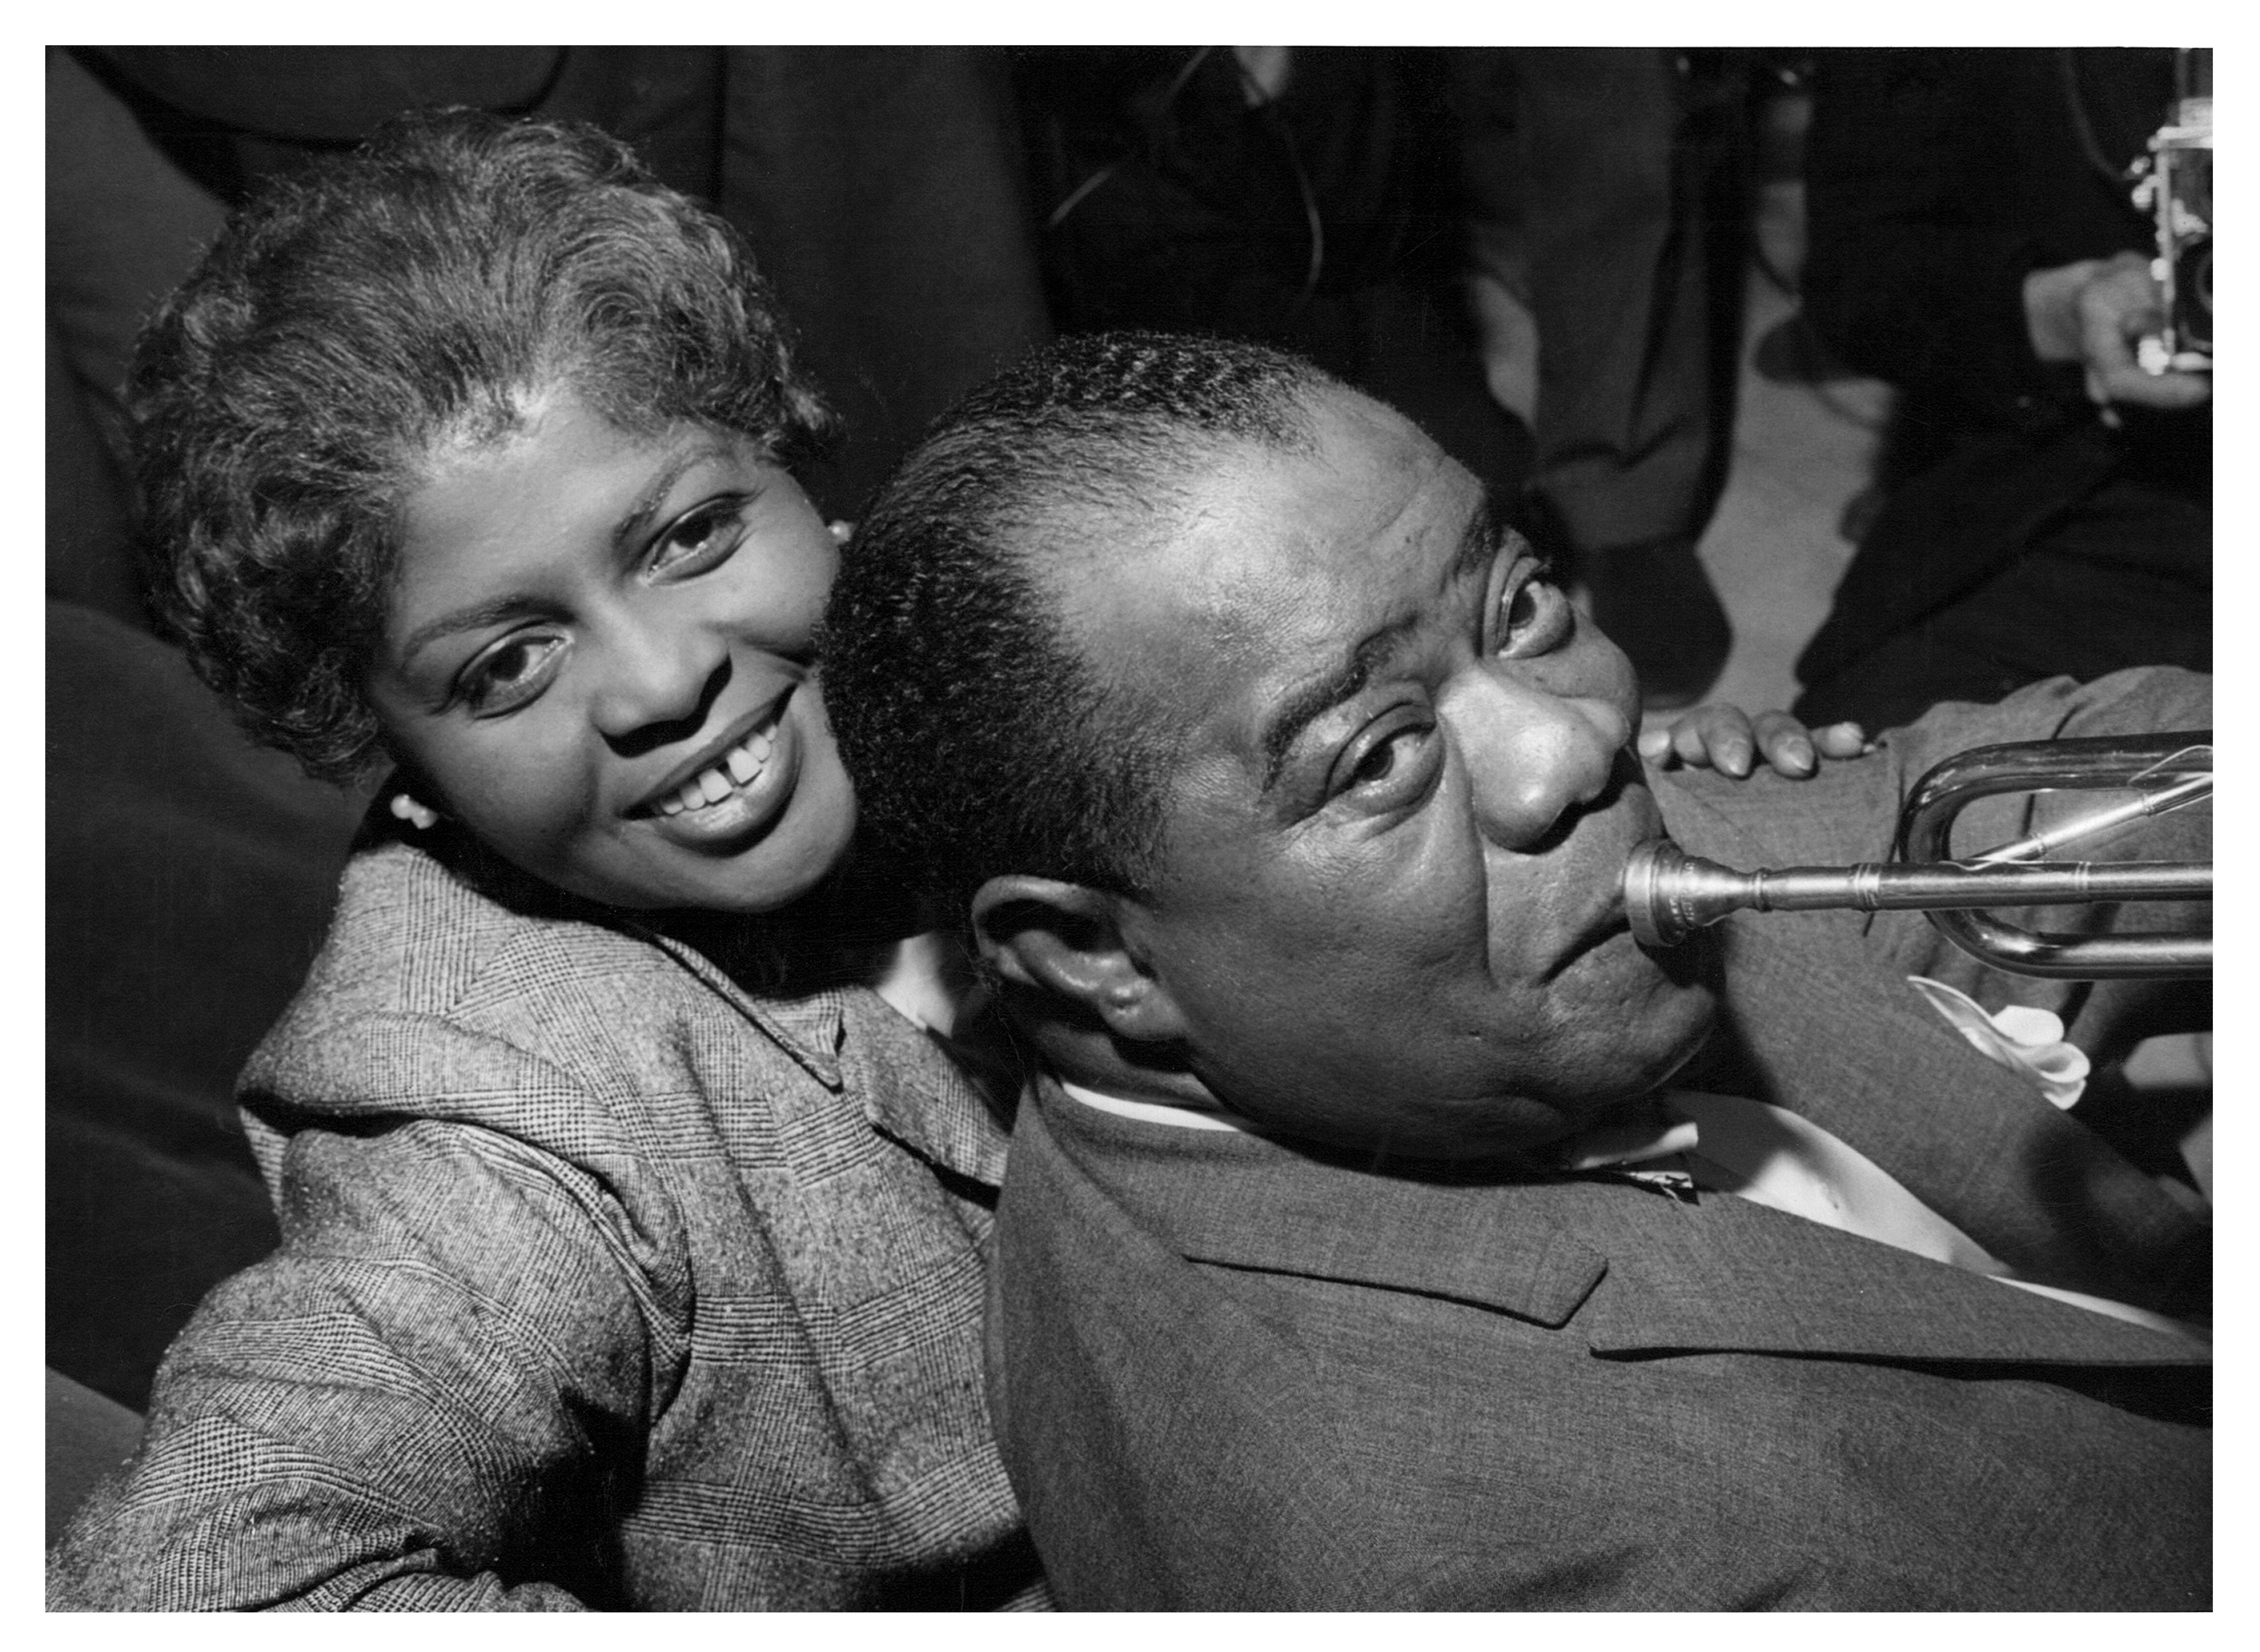 Publicity still portrait of American jazz musician Louis Armstrong and his wife Lucille, 1960 | Photo: GettyImages